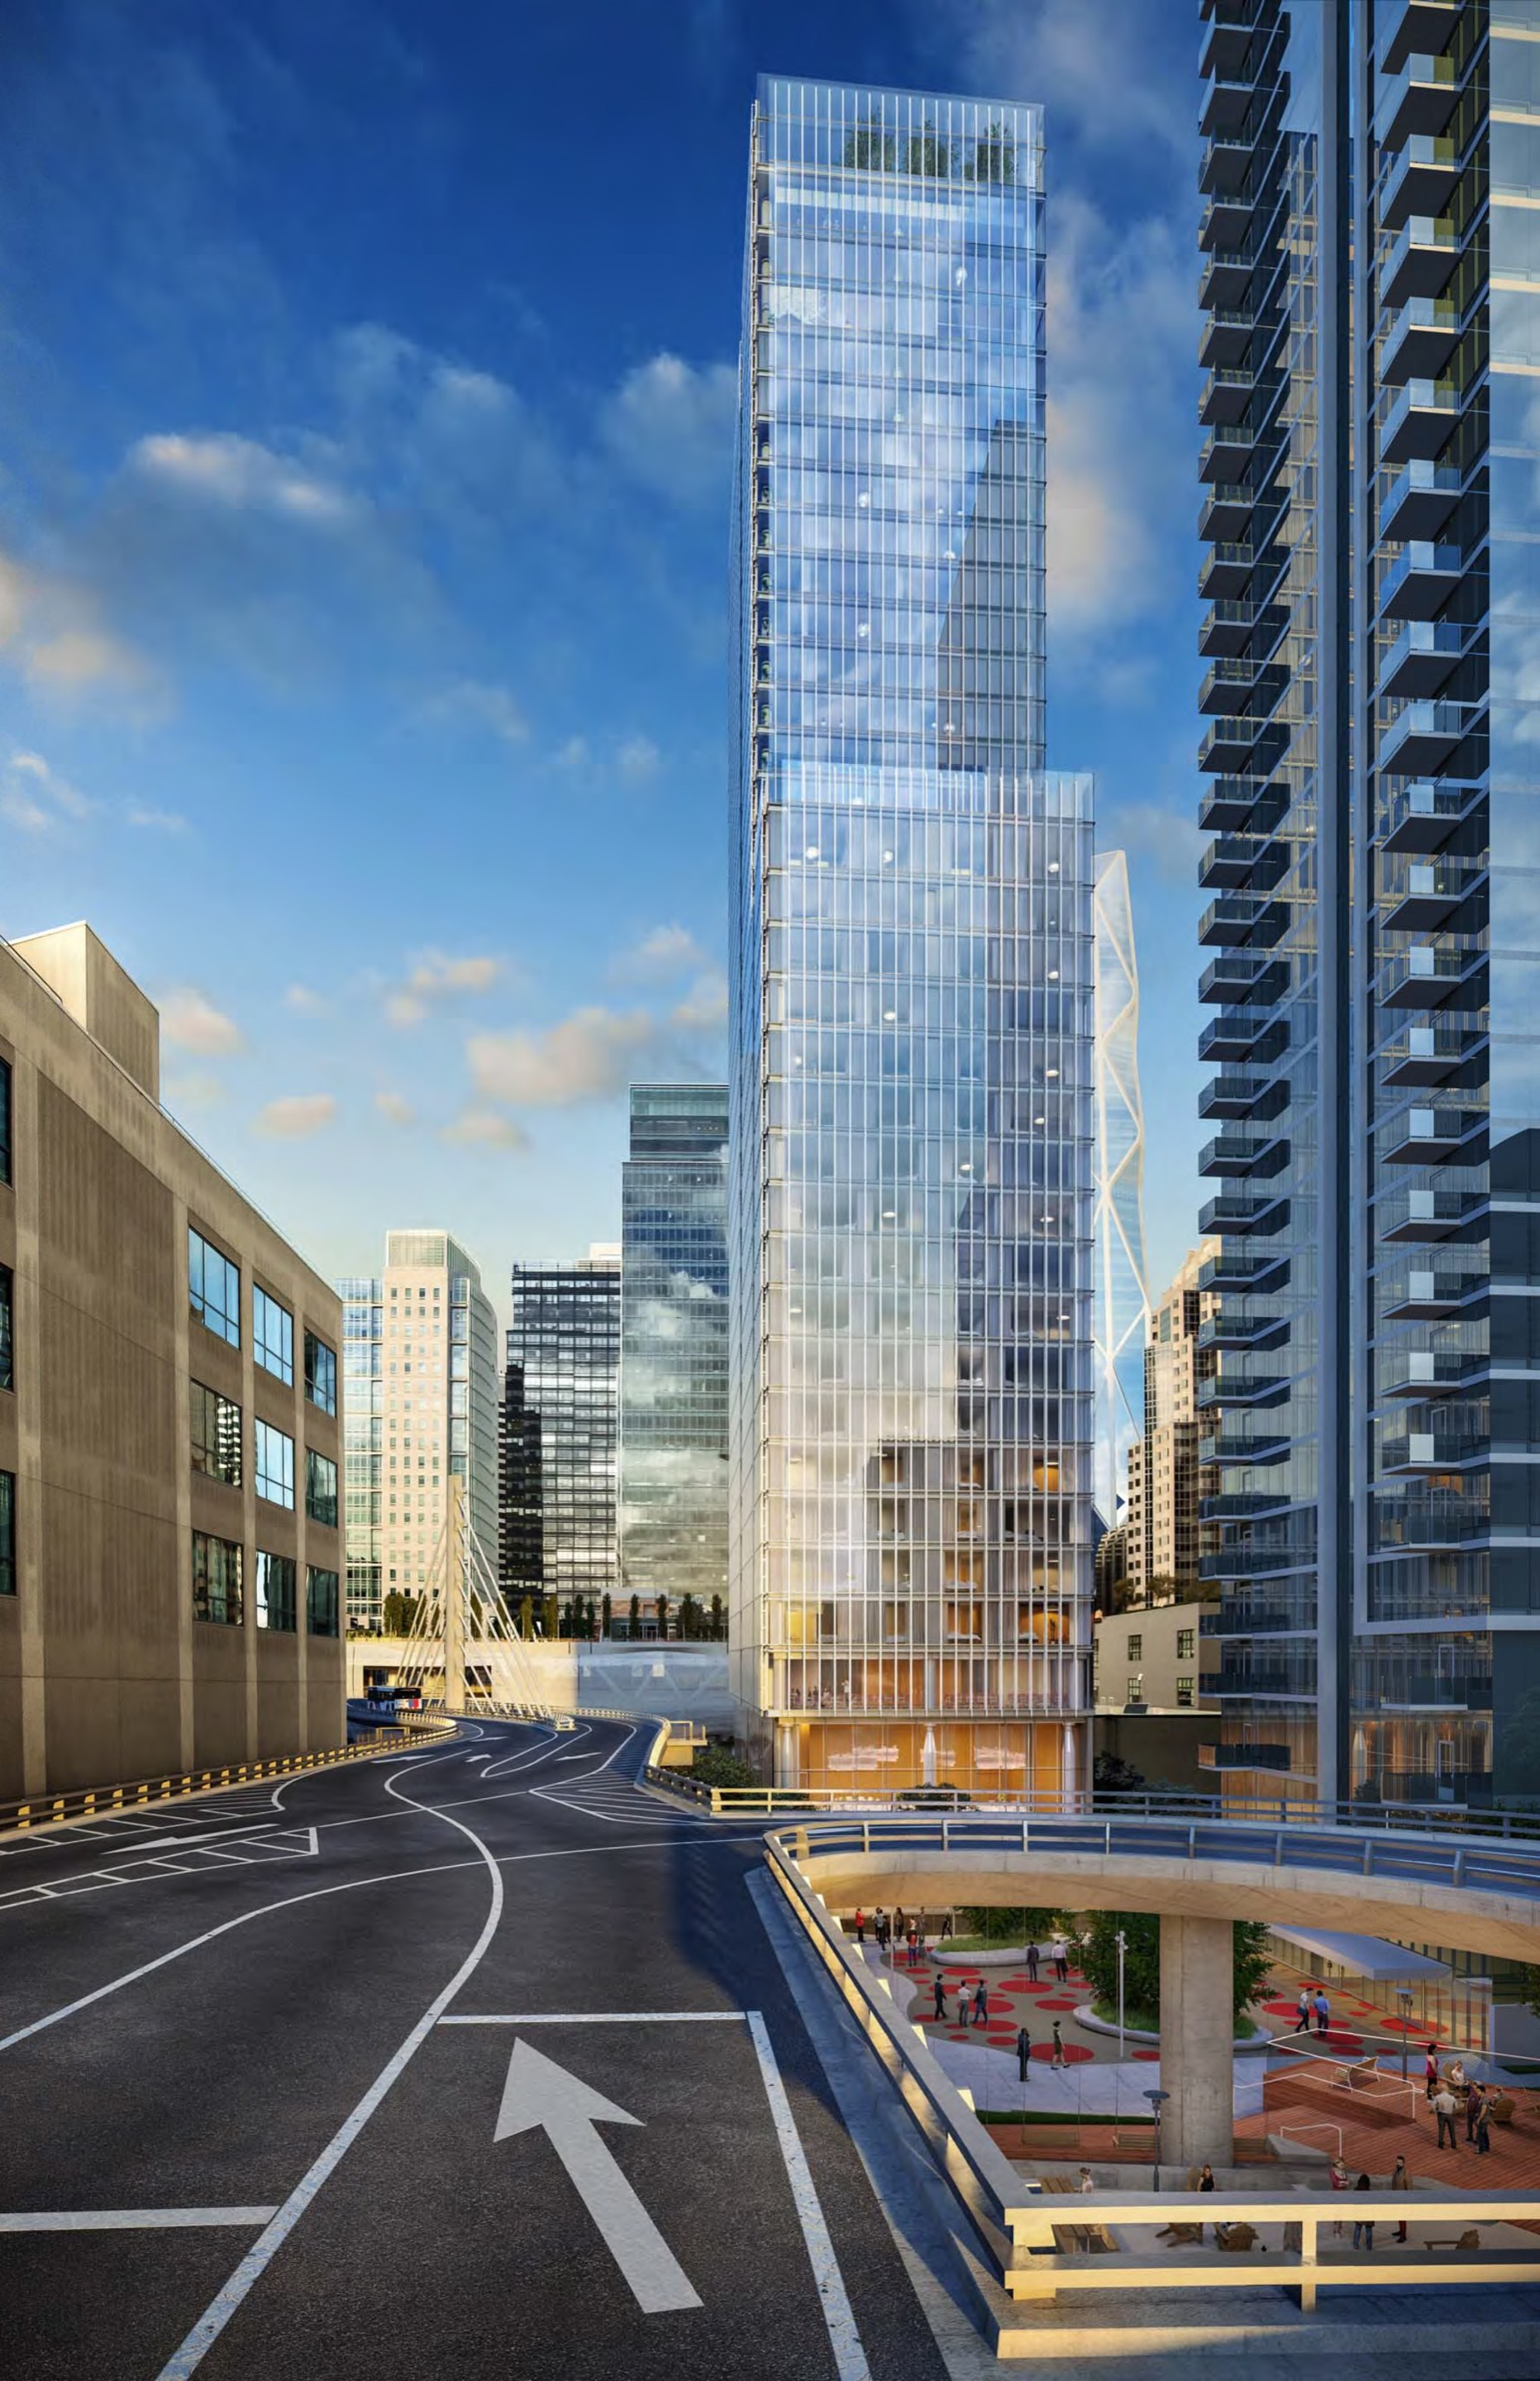 Gallery of Renzo Piano Designs 36Story Hotel and